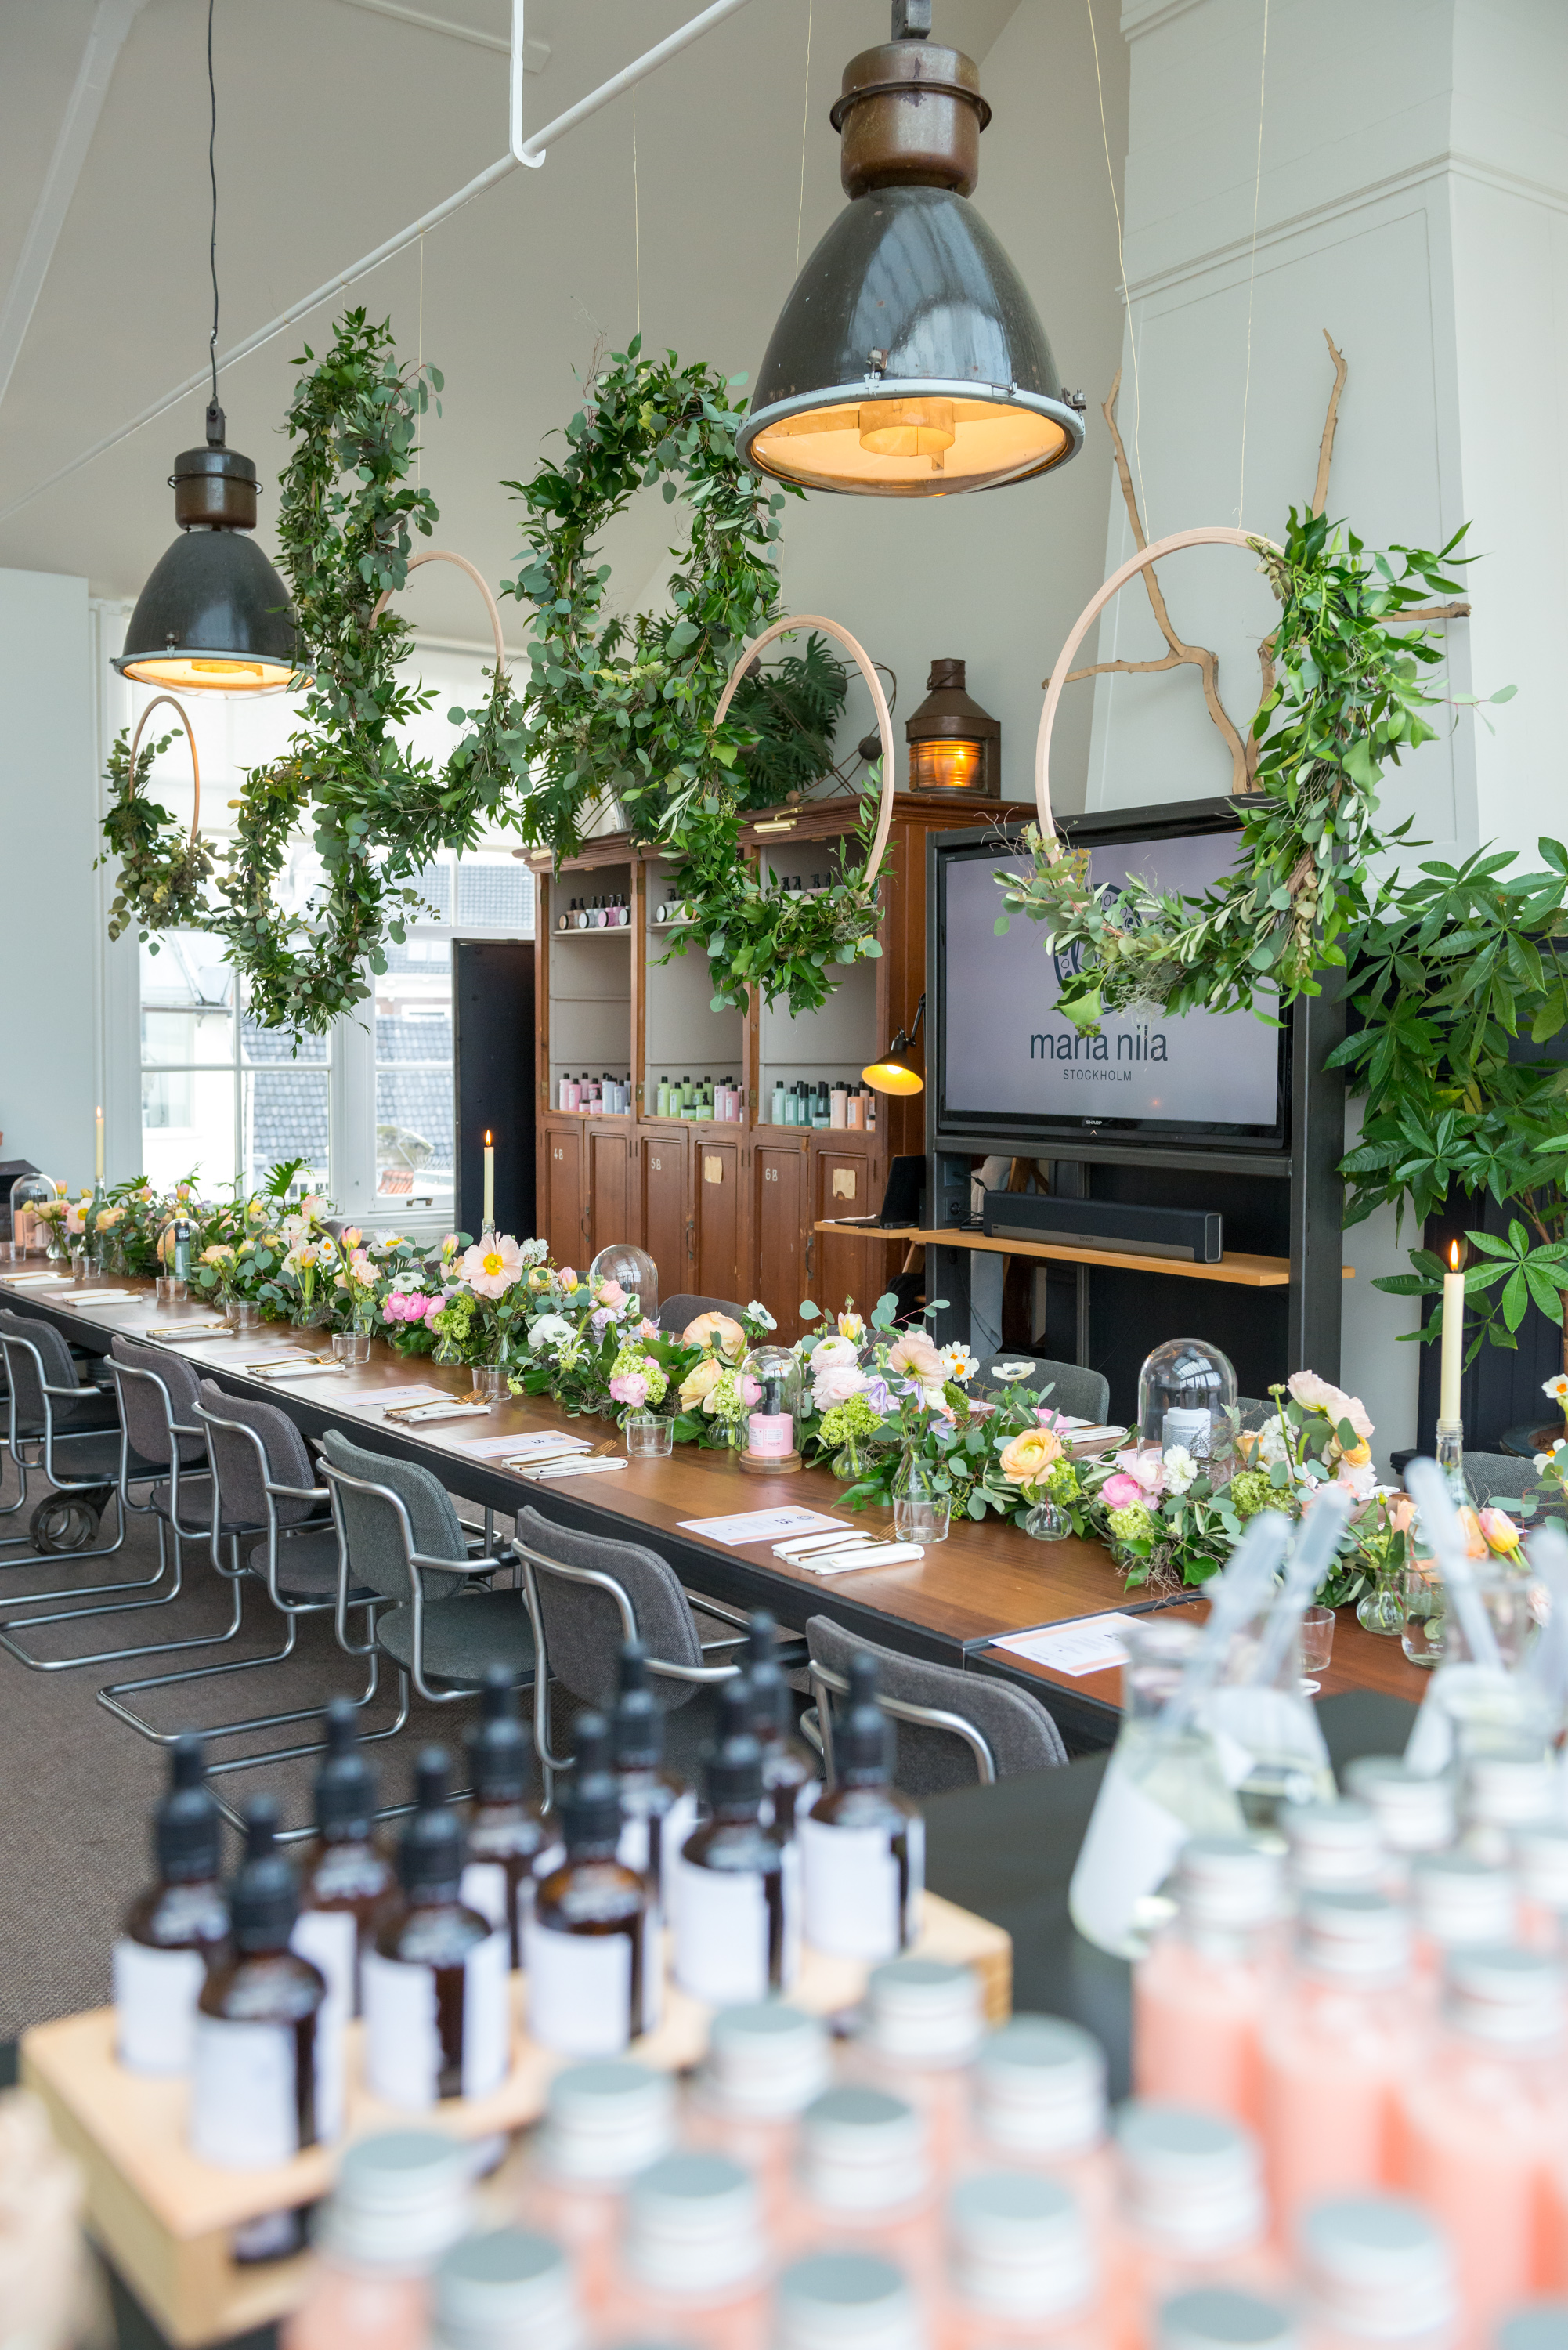 A.P Bloem bloemist bloemen flowers botanical florist event evenement beauty bohemian styling wreaths garland guirlande krans haircare Maria Nila the playing circle Mooi The Agency floral installation